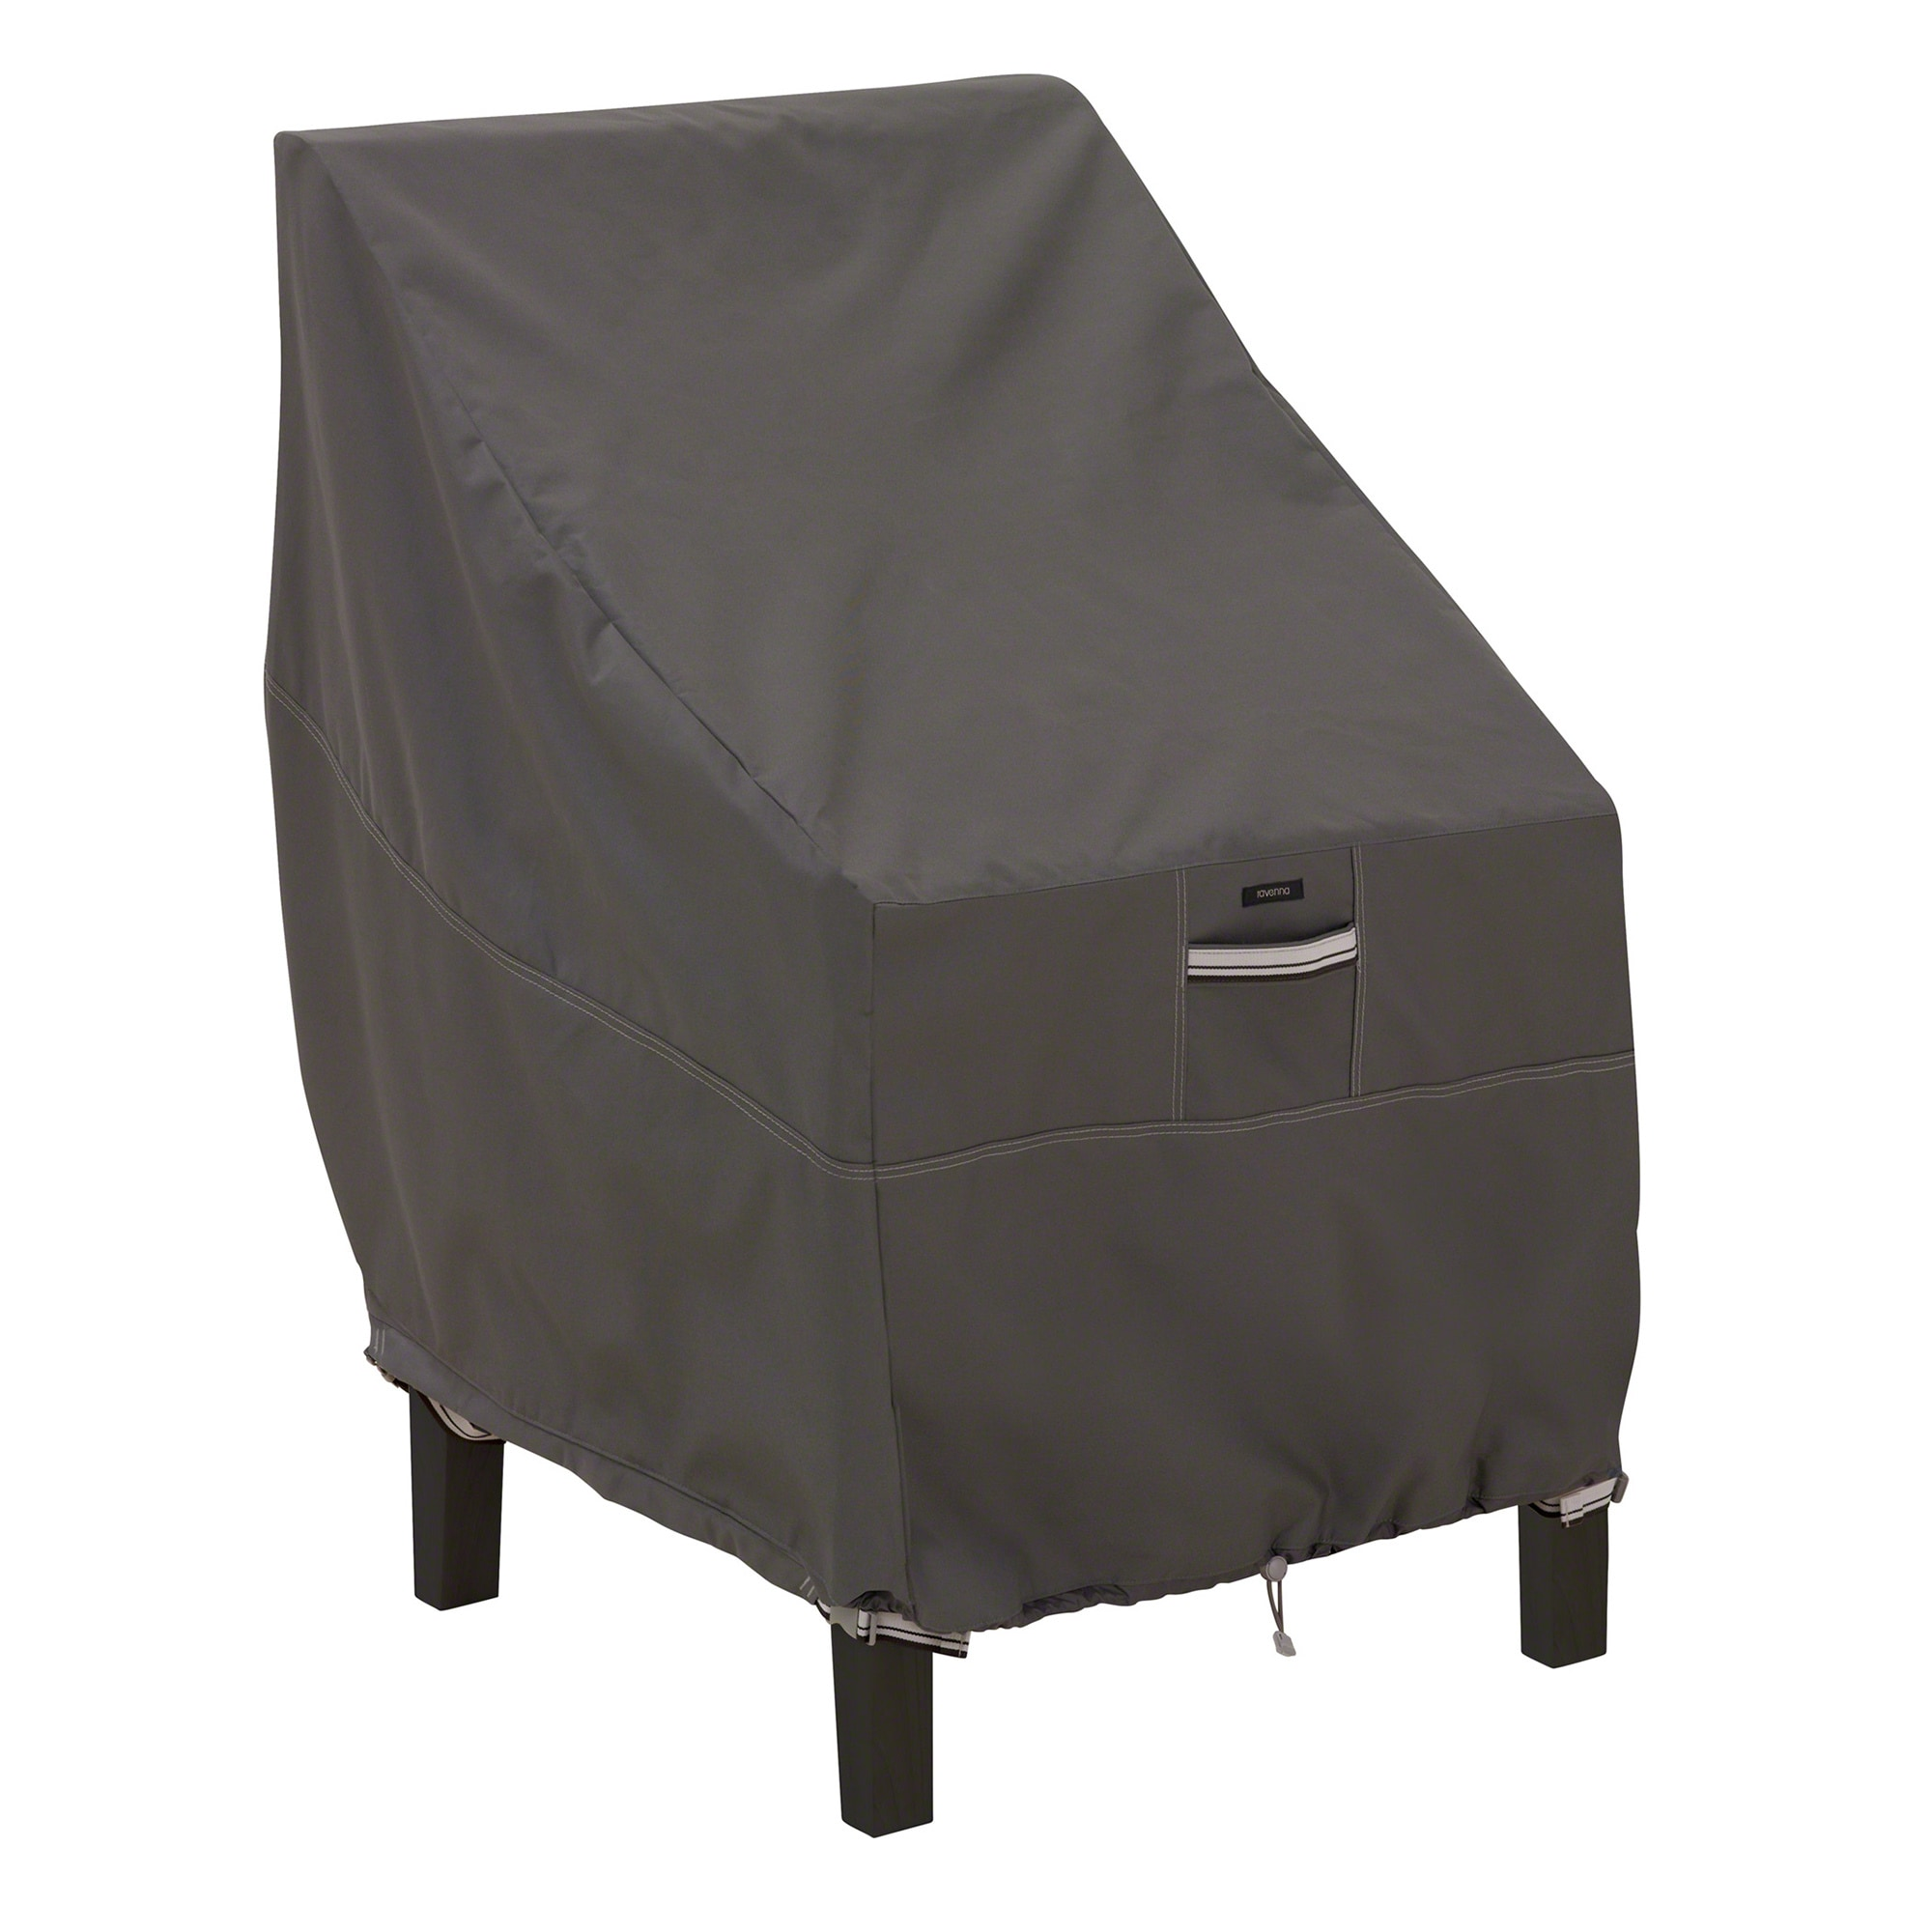 Classic Accessories Covers Ravenna Patio Chair Covers Patio